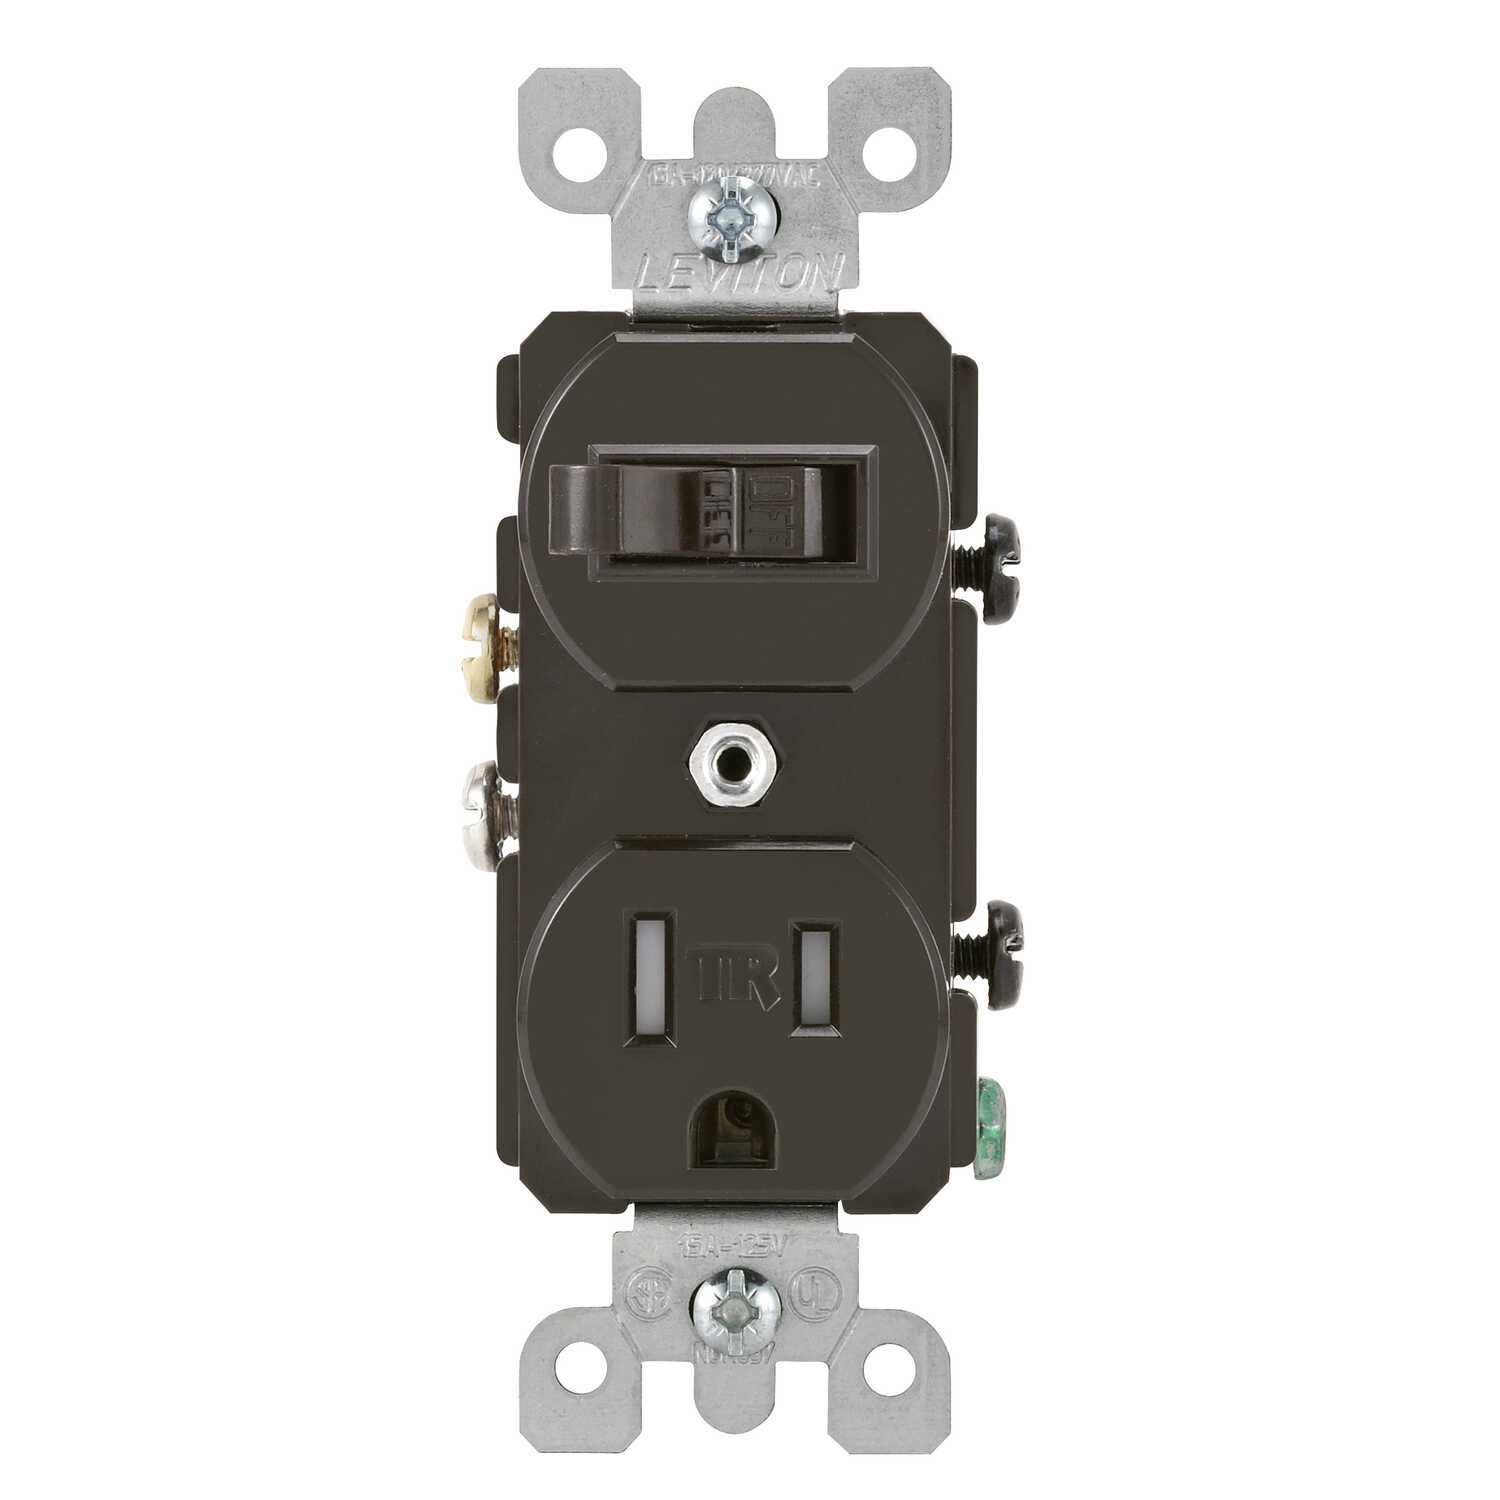 Leviton  15 amps 125 volt Brown  Combination Switch/Outlet  5-15R  1 pk